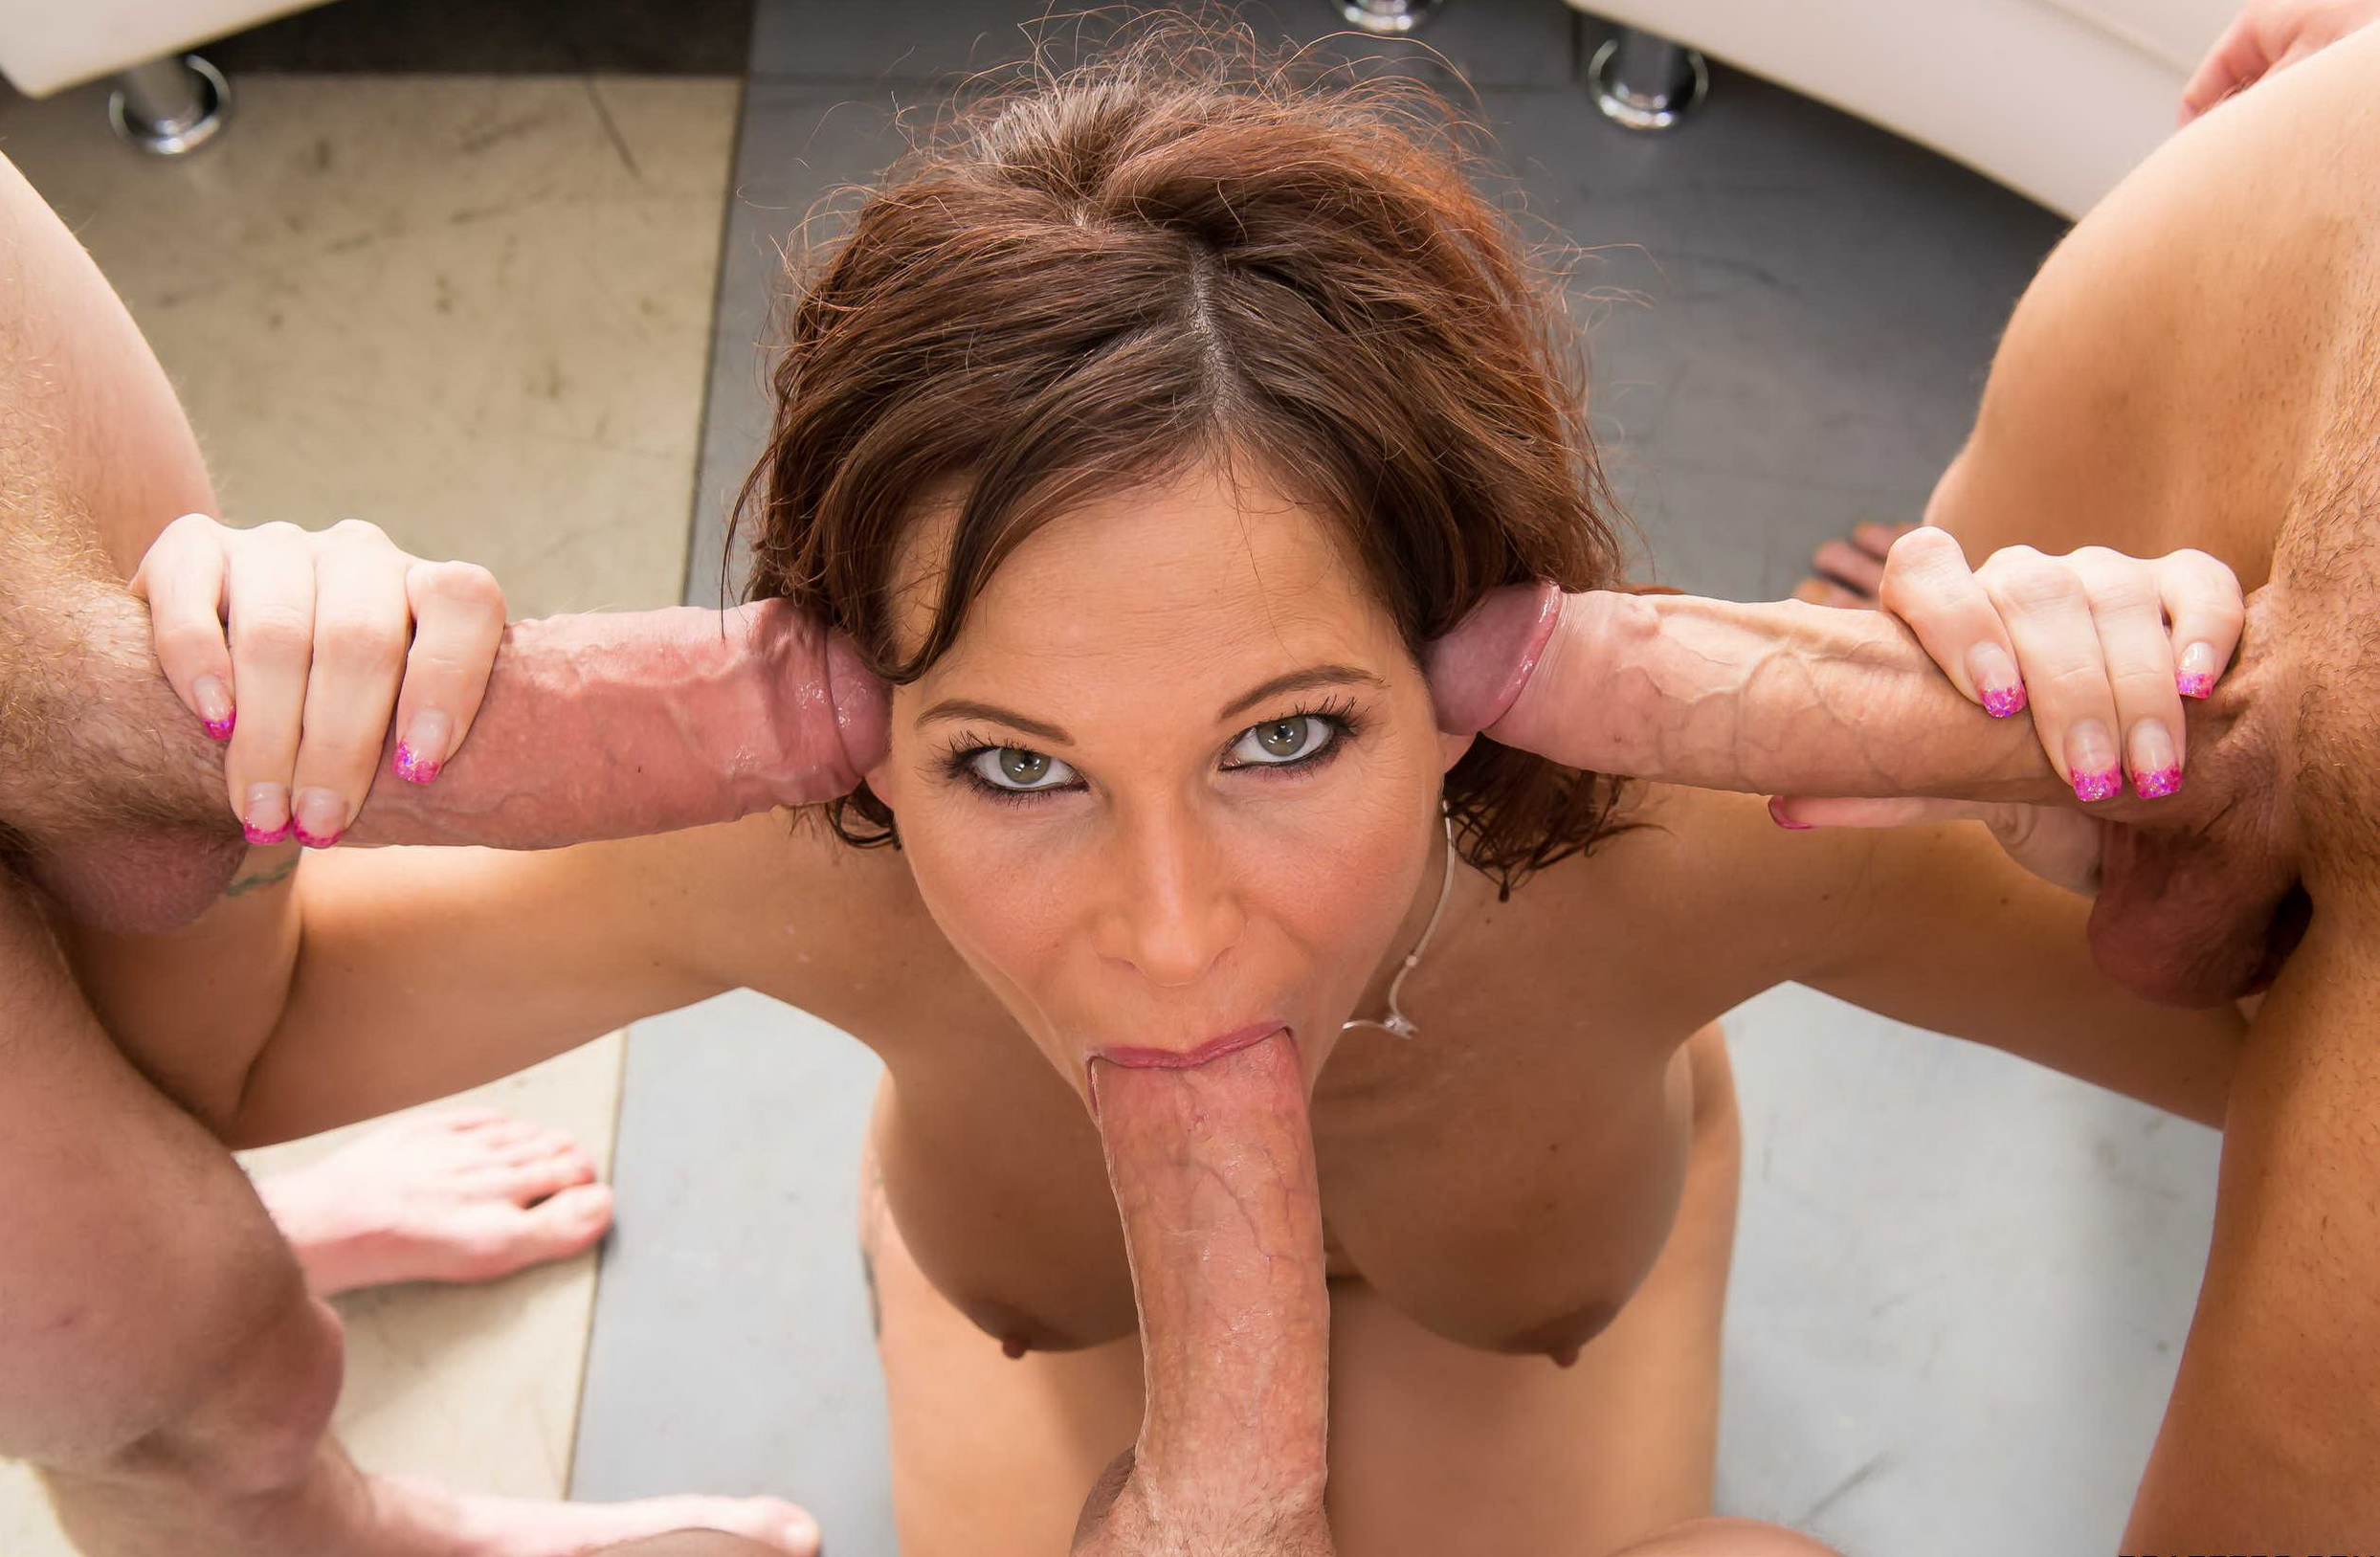 Sucking and fucking x porn hosted pics